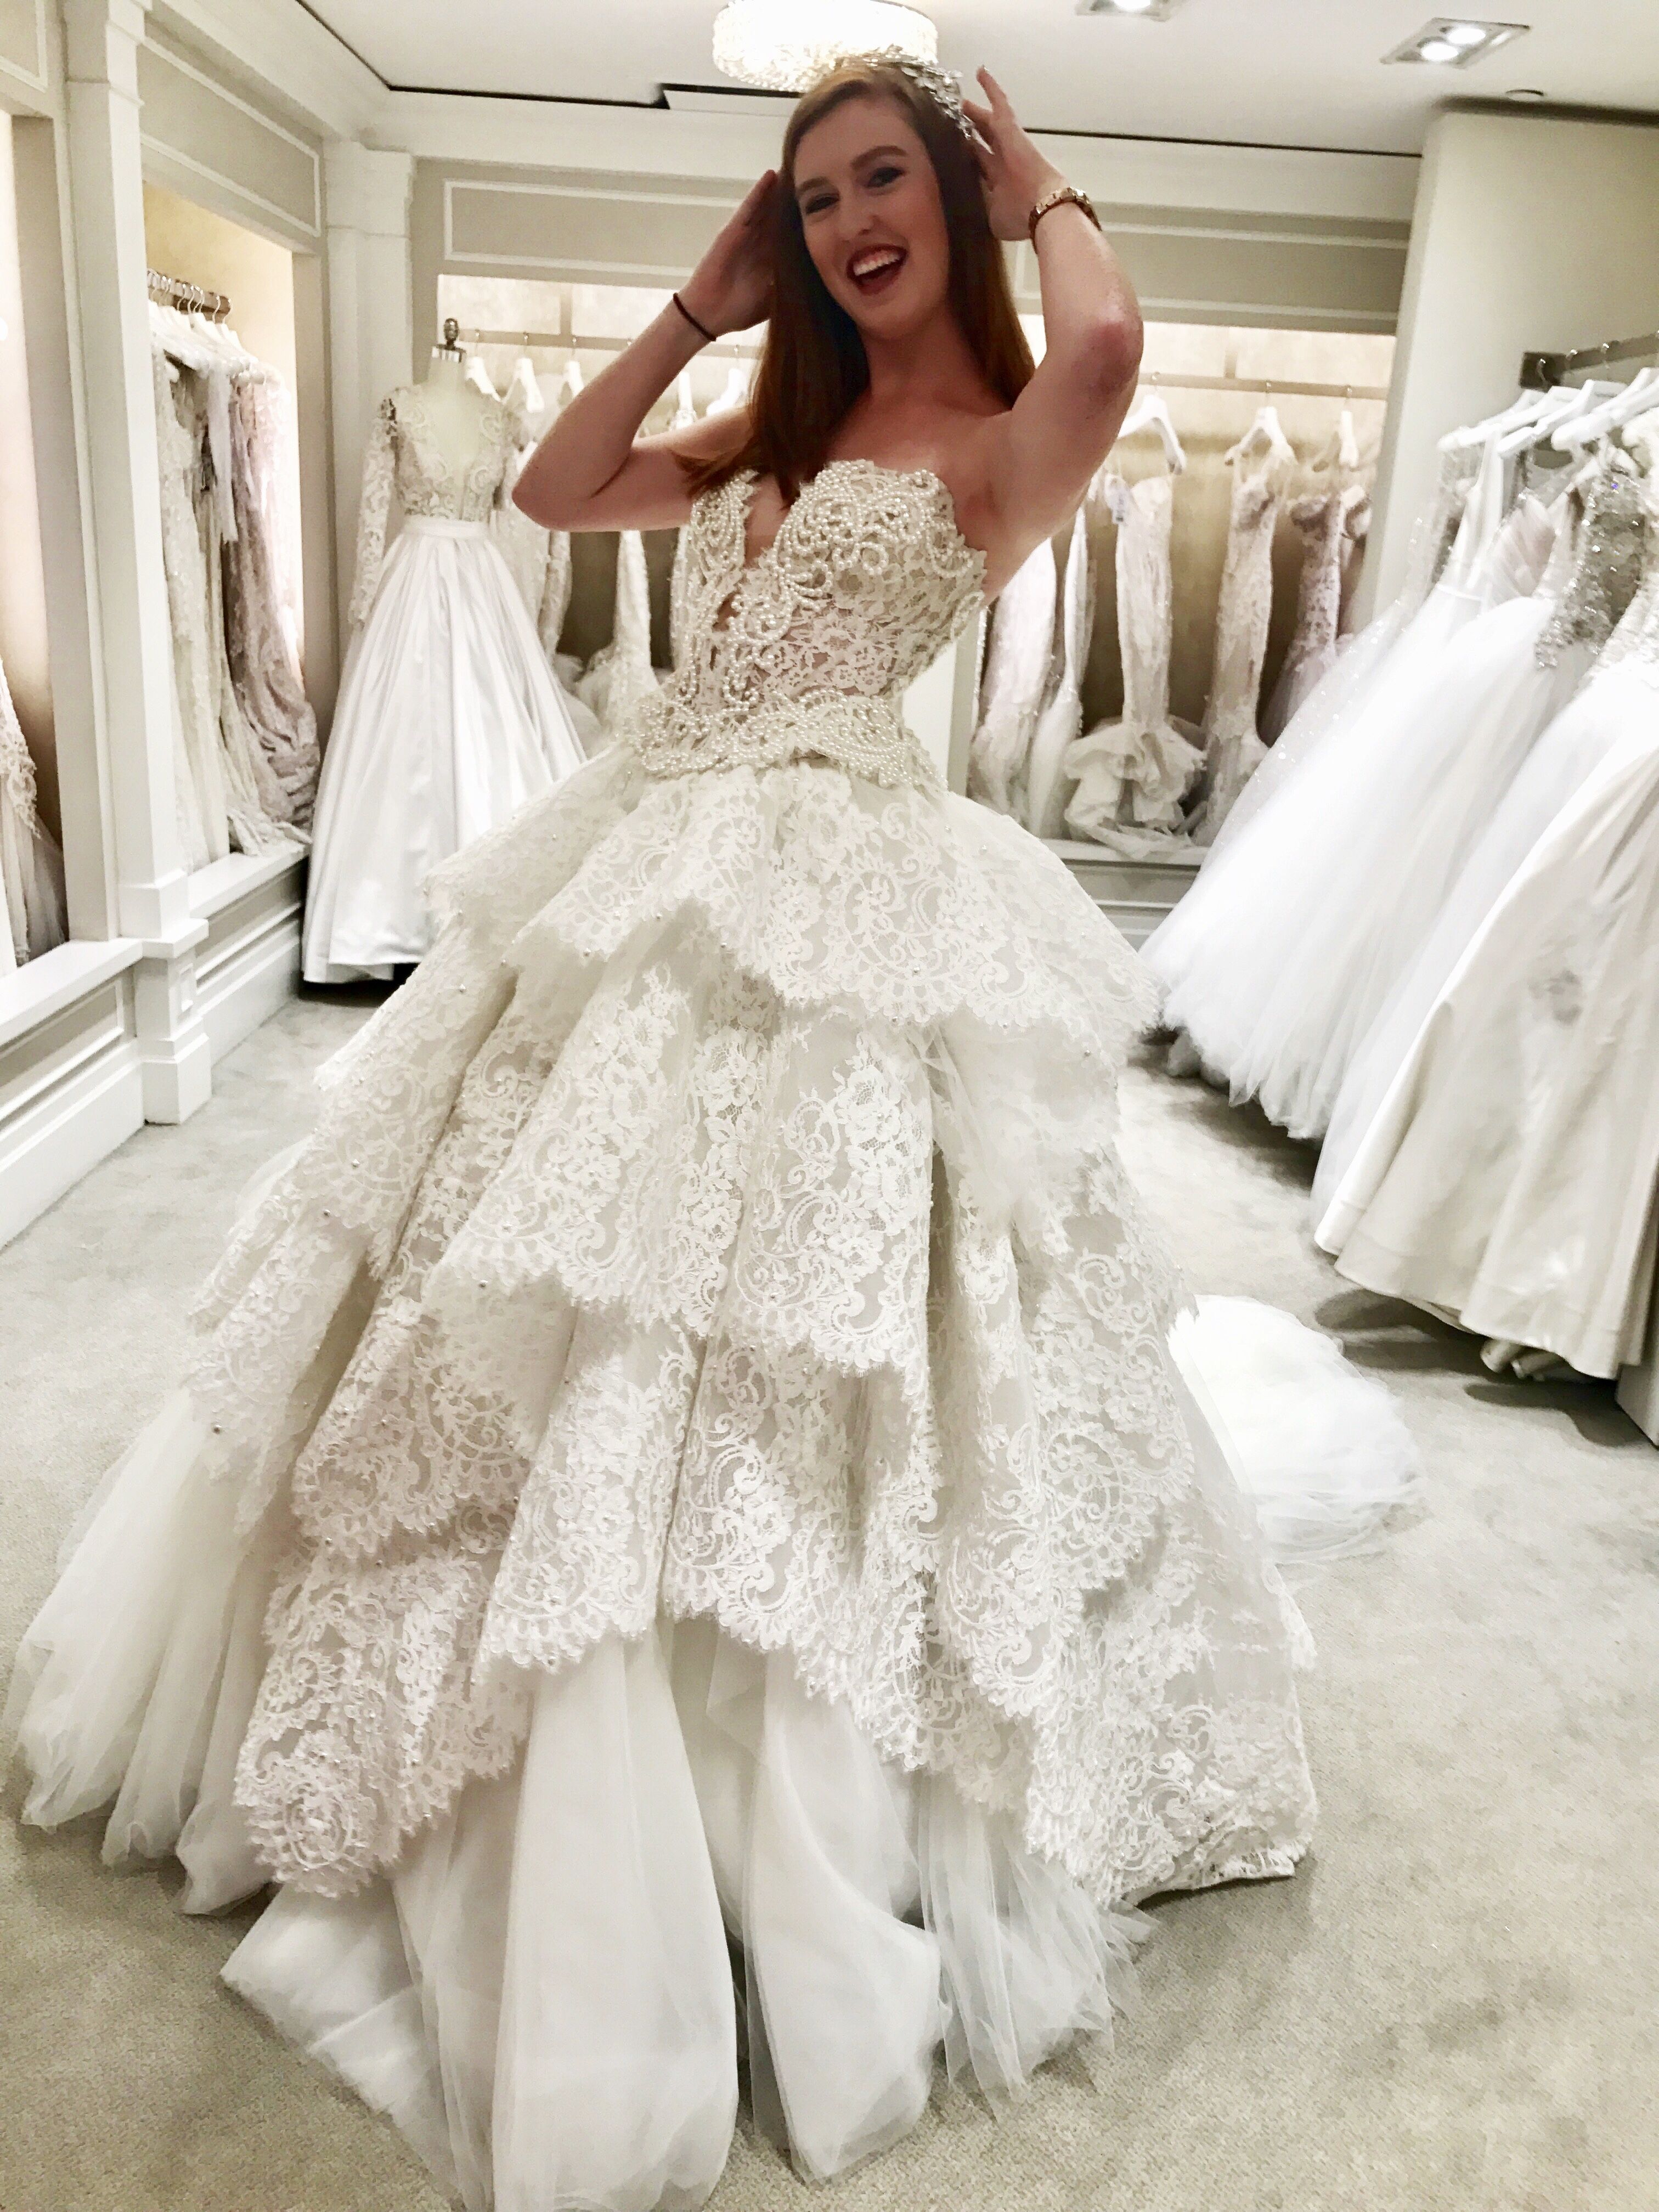 7570cfbce53c Pnina Tornai ballgown from Kleinfeld Bridal in New York City, home of tv  show Say Yes to the Dress. Come say hello on IG and FB at @bridalandbridle  and ...